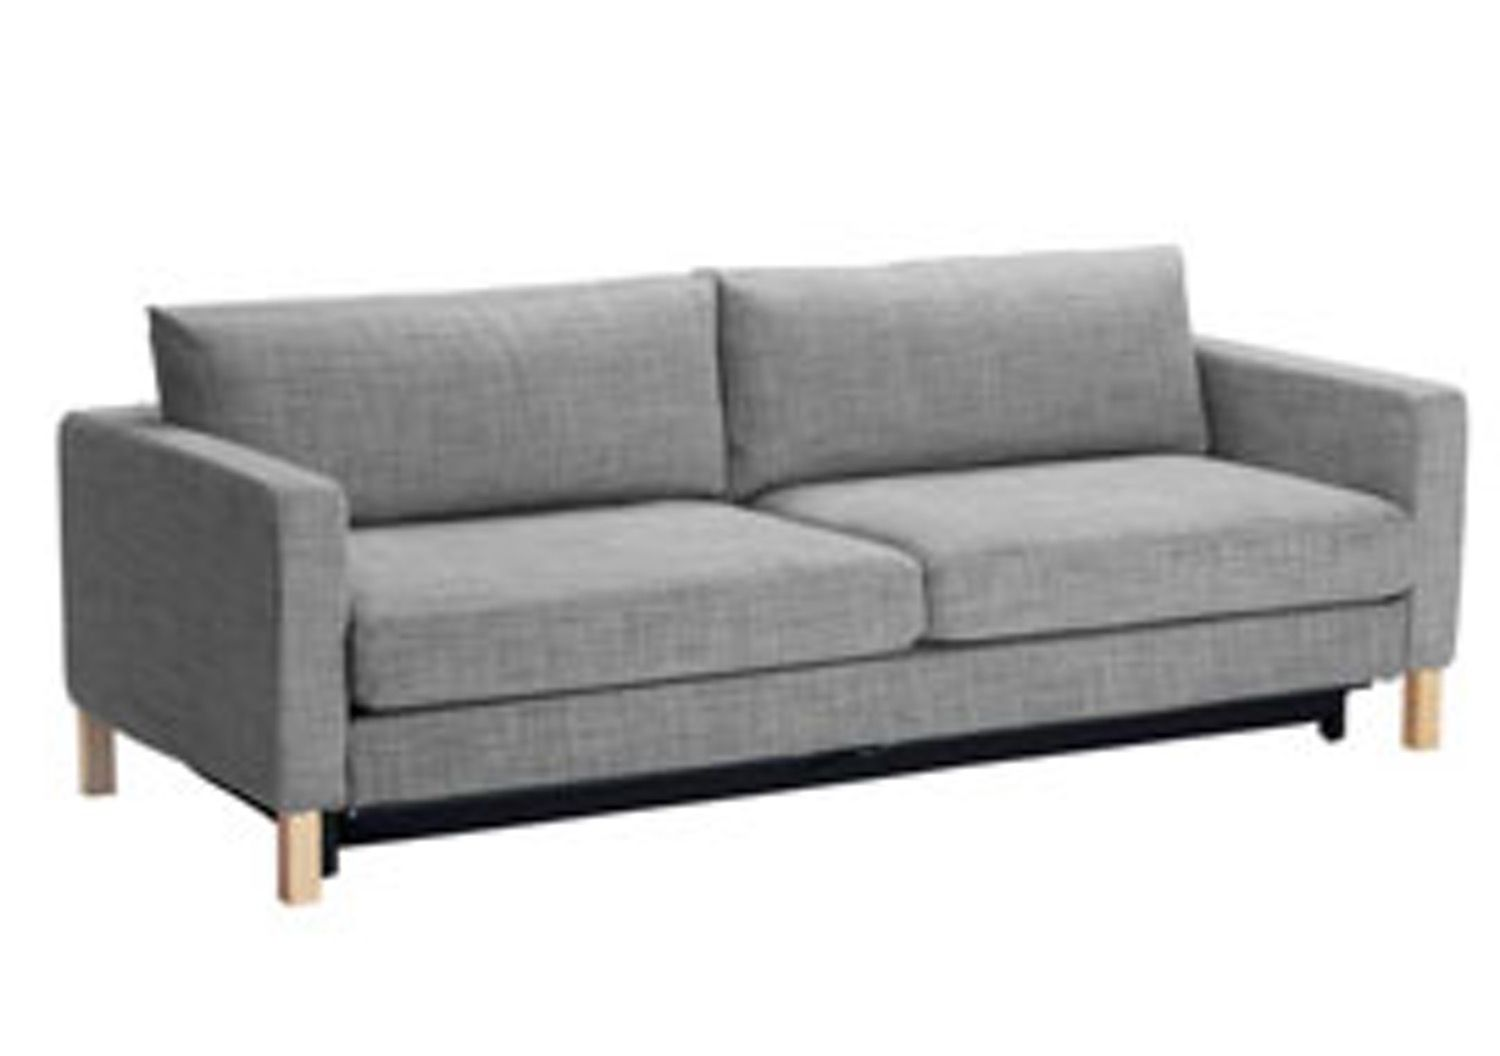 Ideas For Getting A Sleeper Sofa Into Apartment With Small Doorway Clearance